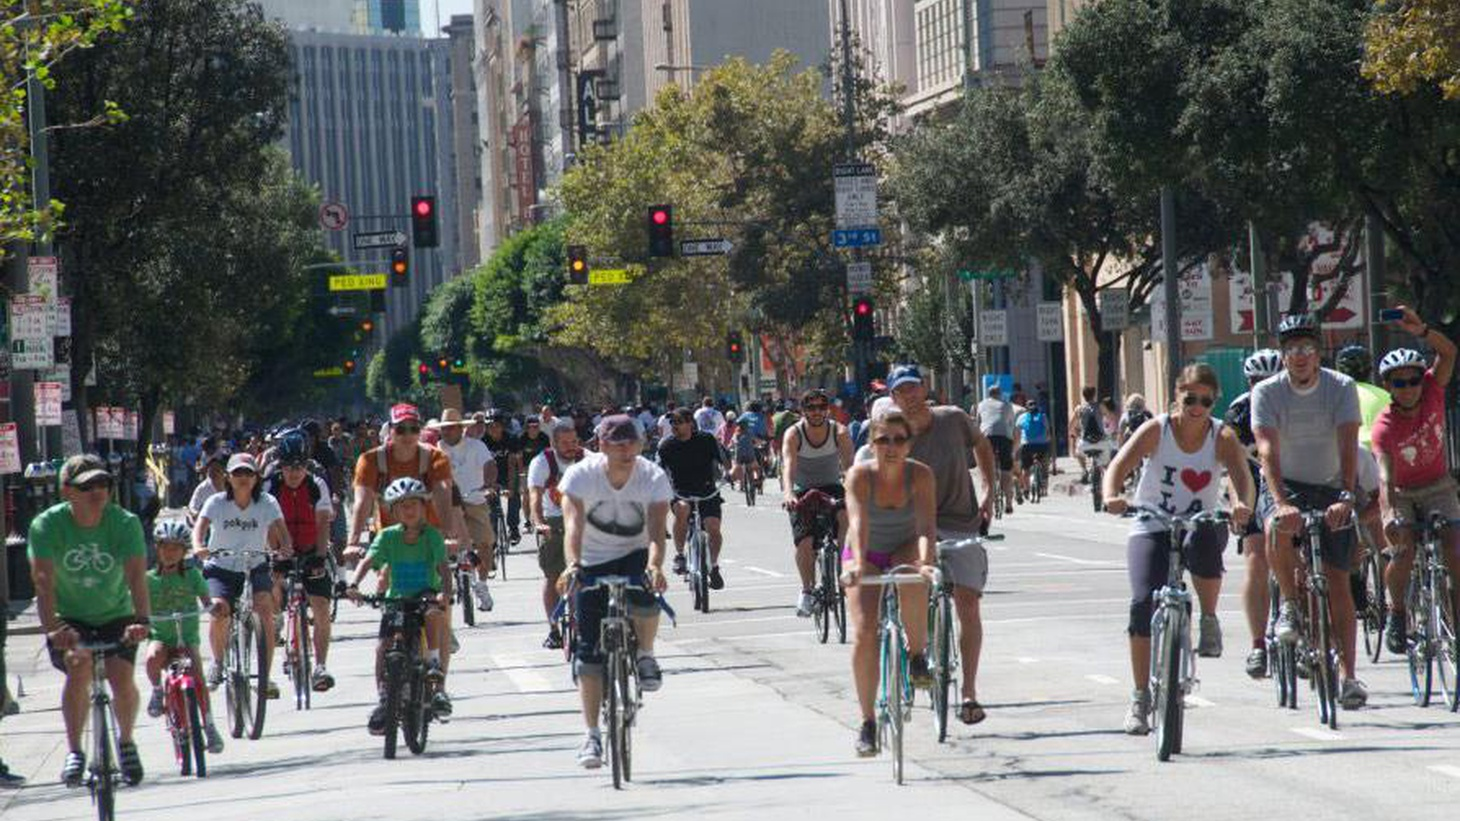 There's growing tension between cyclists and motorists. Are hit-and-runs increasing? What's the LAPD say about an ordinance giving cyclists the power to fight back.